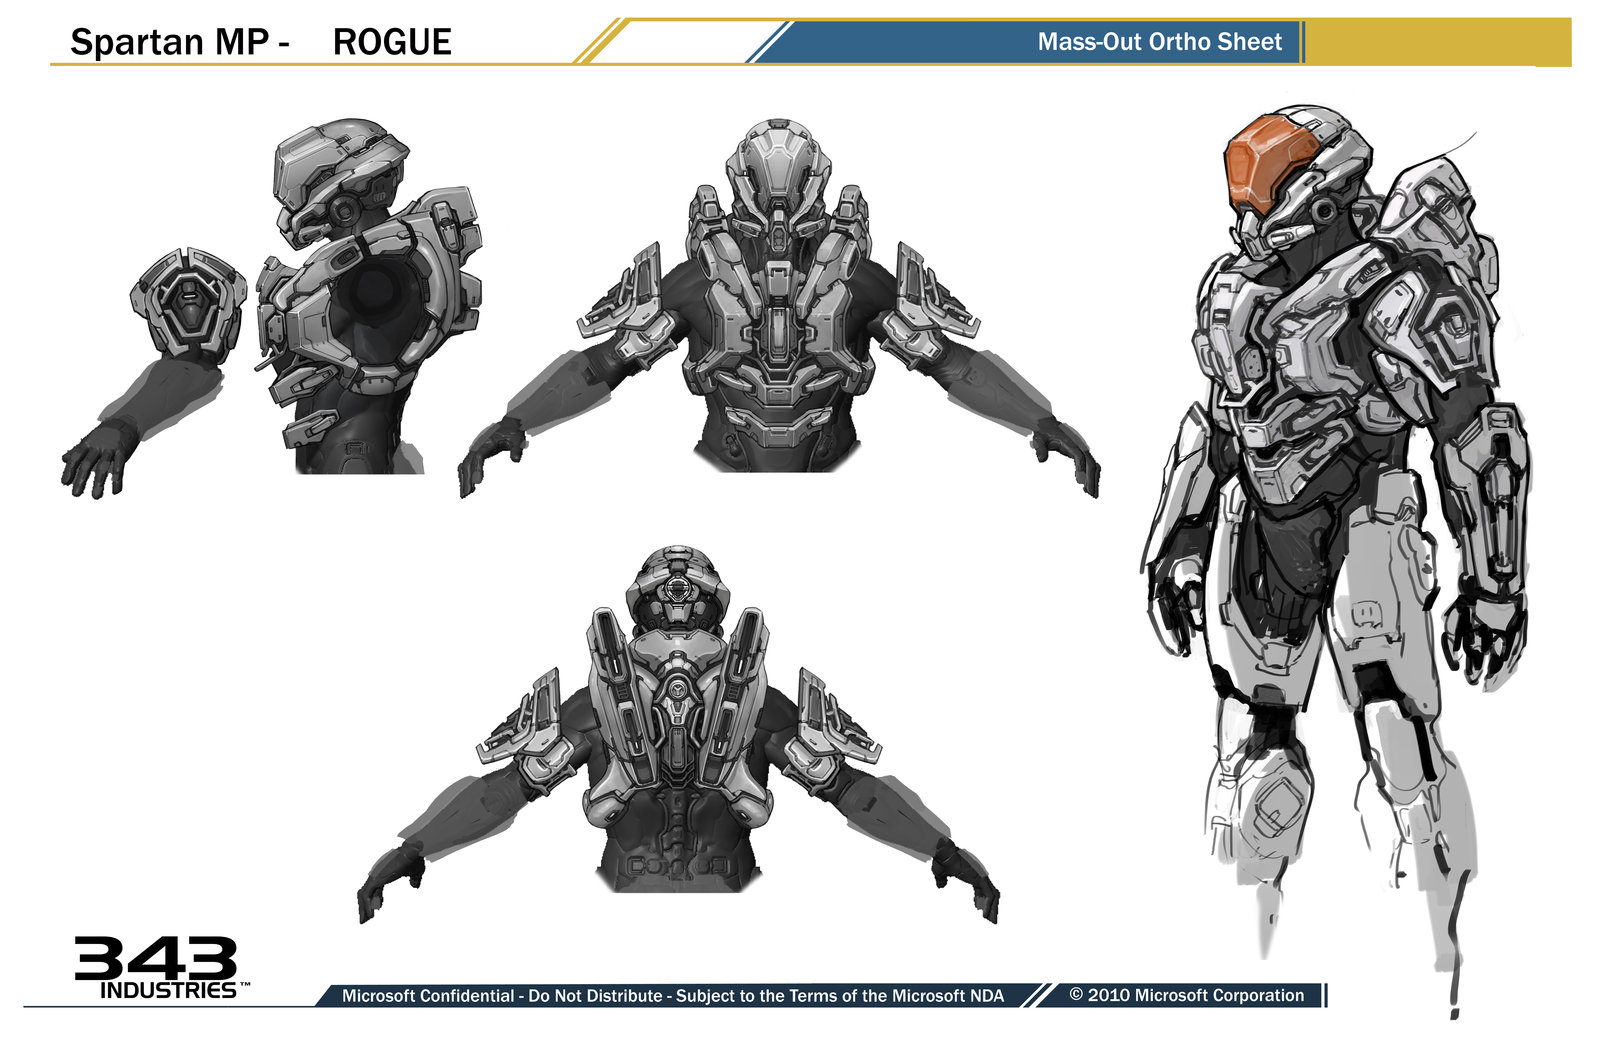 Rogue Armor for Halo 4